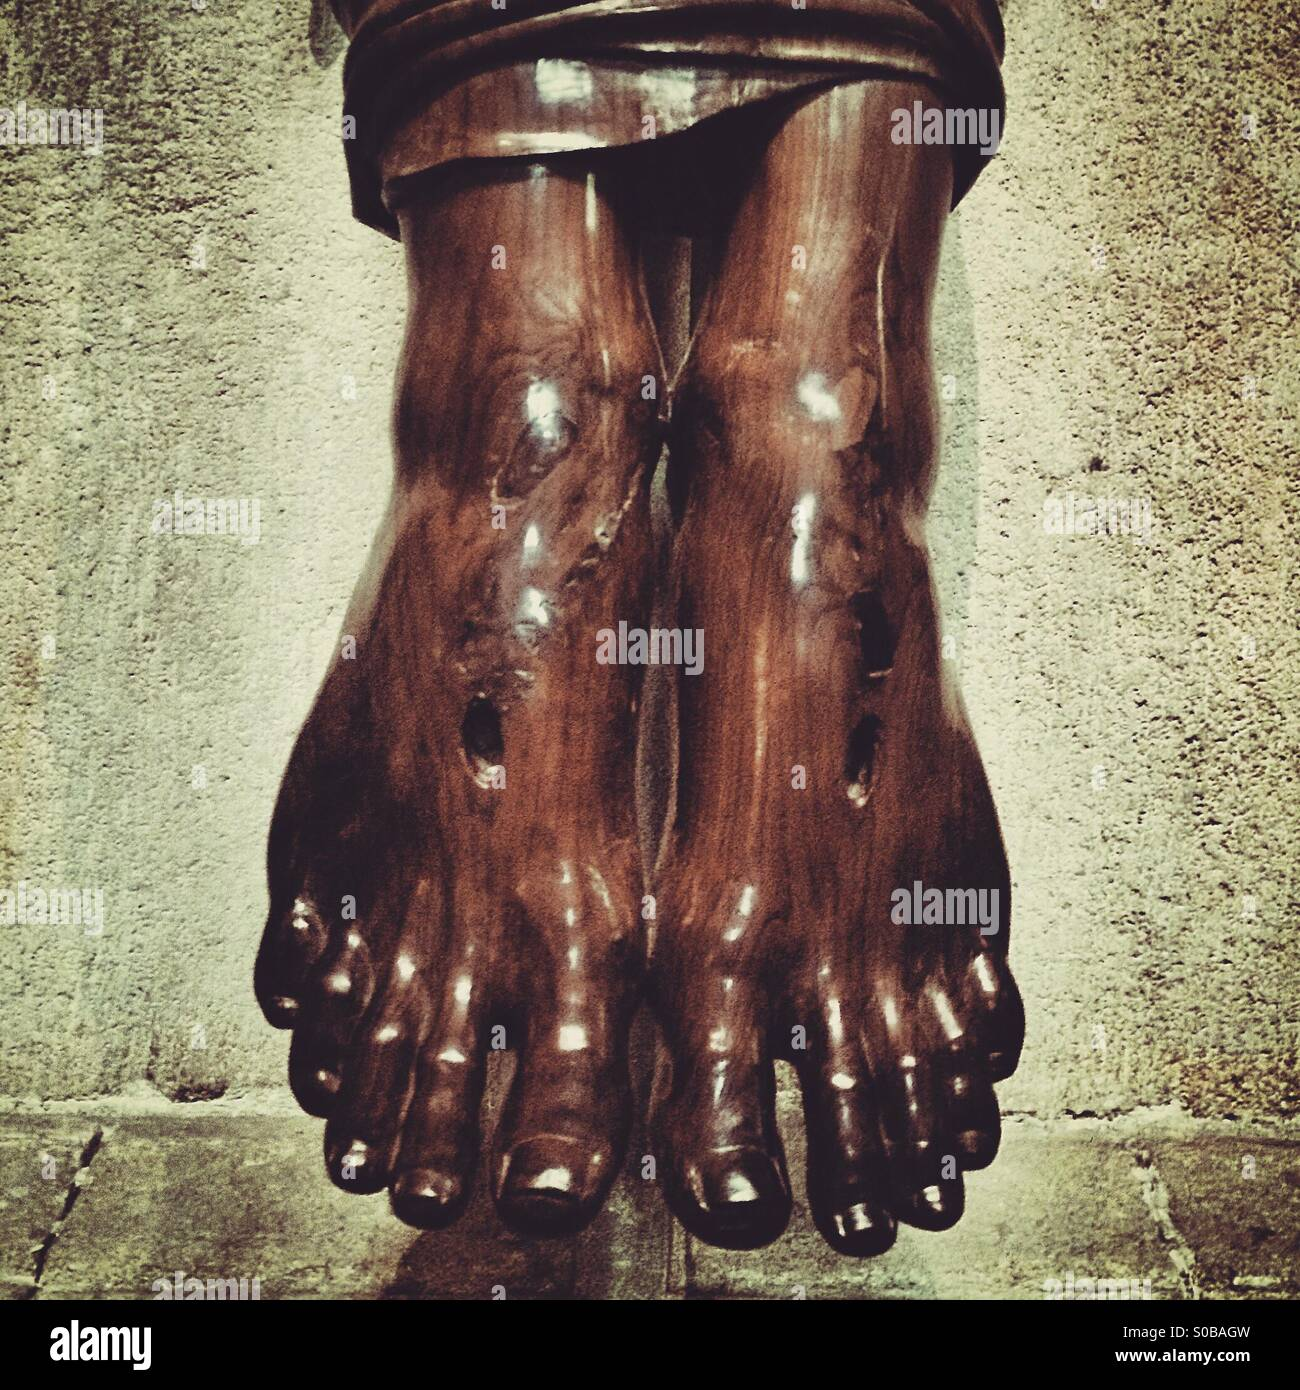 Wooden carving of the feet of Christ - Stock Image